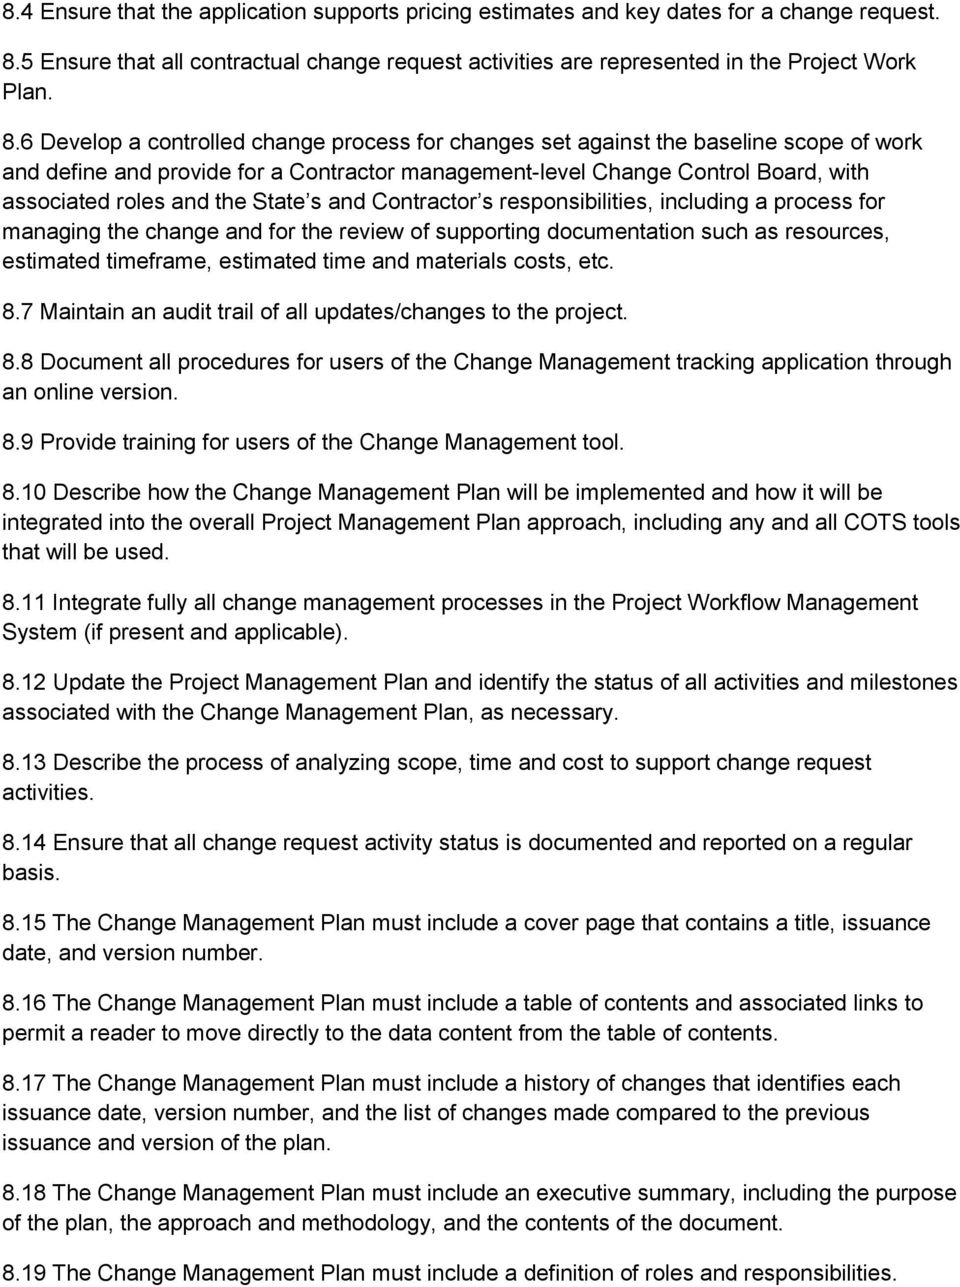 6 Develop a controlled change process for changes set against the baseline scope of work and define and provide for a Contractor management-level Change Control Board, with associated roles and the